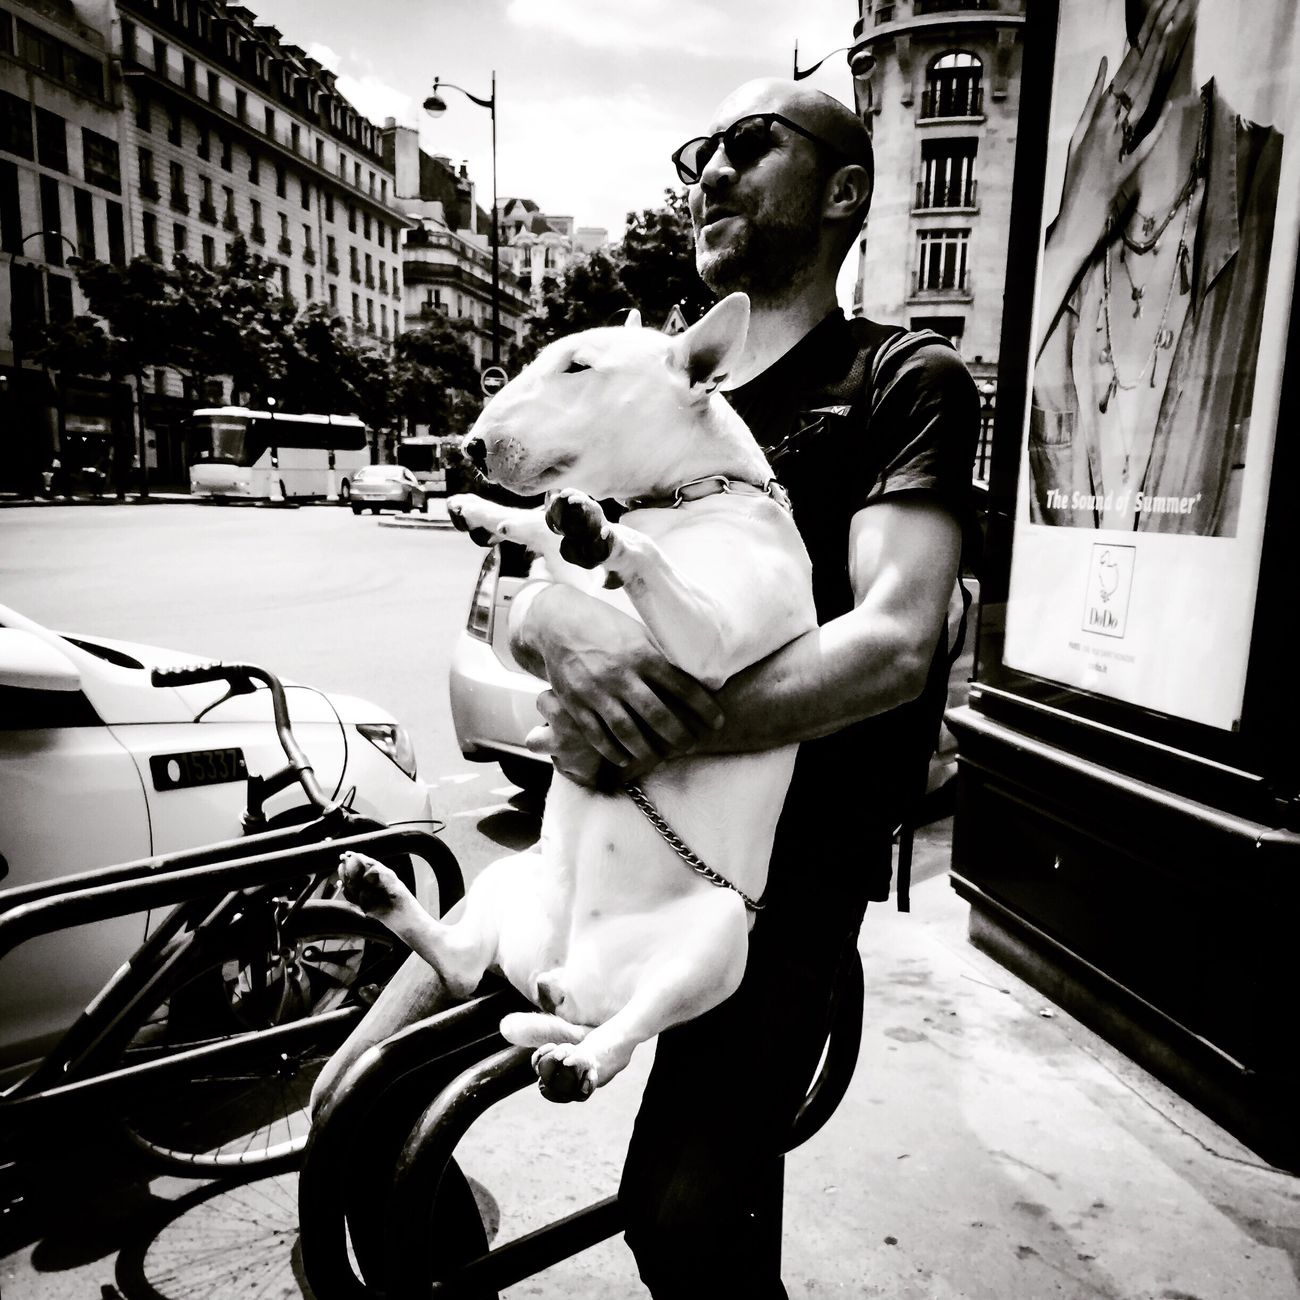 Sitting Bull | snapshot in Paris nearby Opera Garnier City Life Street City Building Exterior Car Outdoors Mode Of Transport Real People Land Vehicle Dog Day One Animal Architecture Pets Men Young Adult Built Structure One Person Mammal Adult (null) The Street Photographer - 2017 EyeEm Awards The Photojournalist - 2017 EyeEm Awards